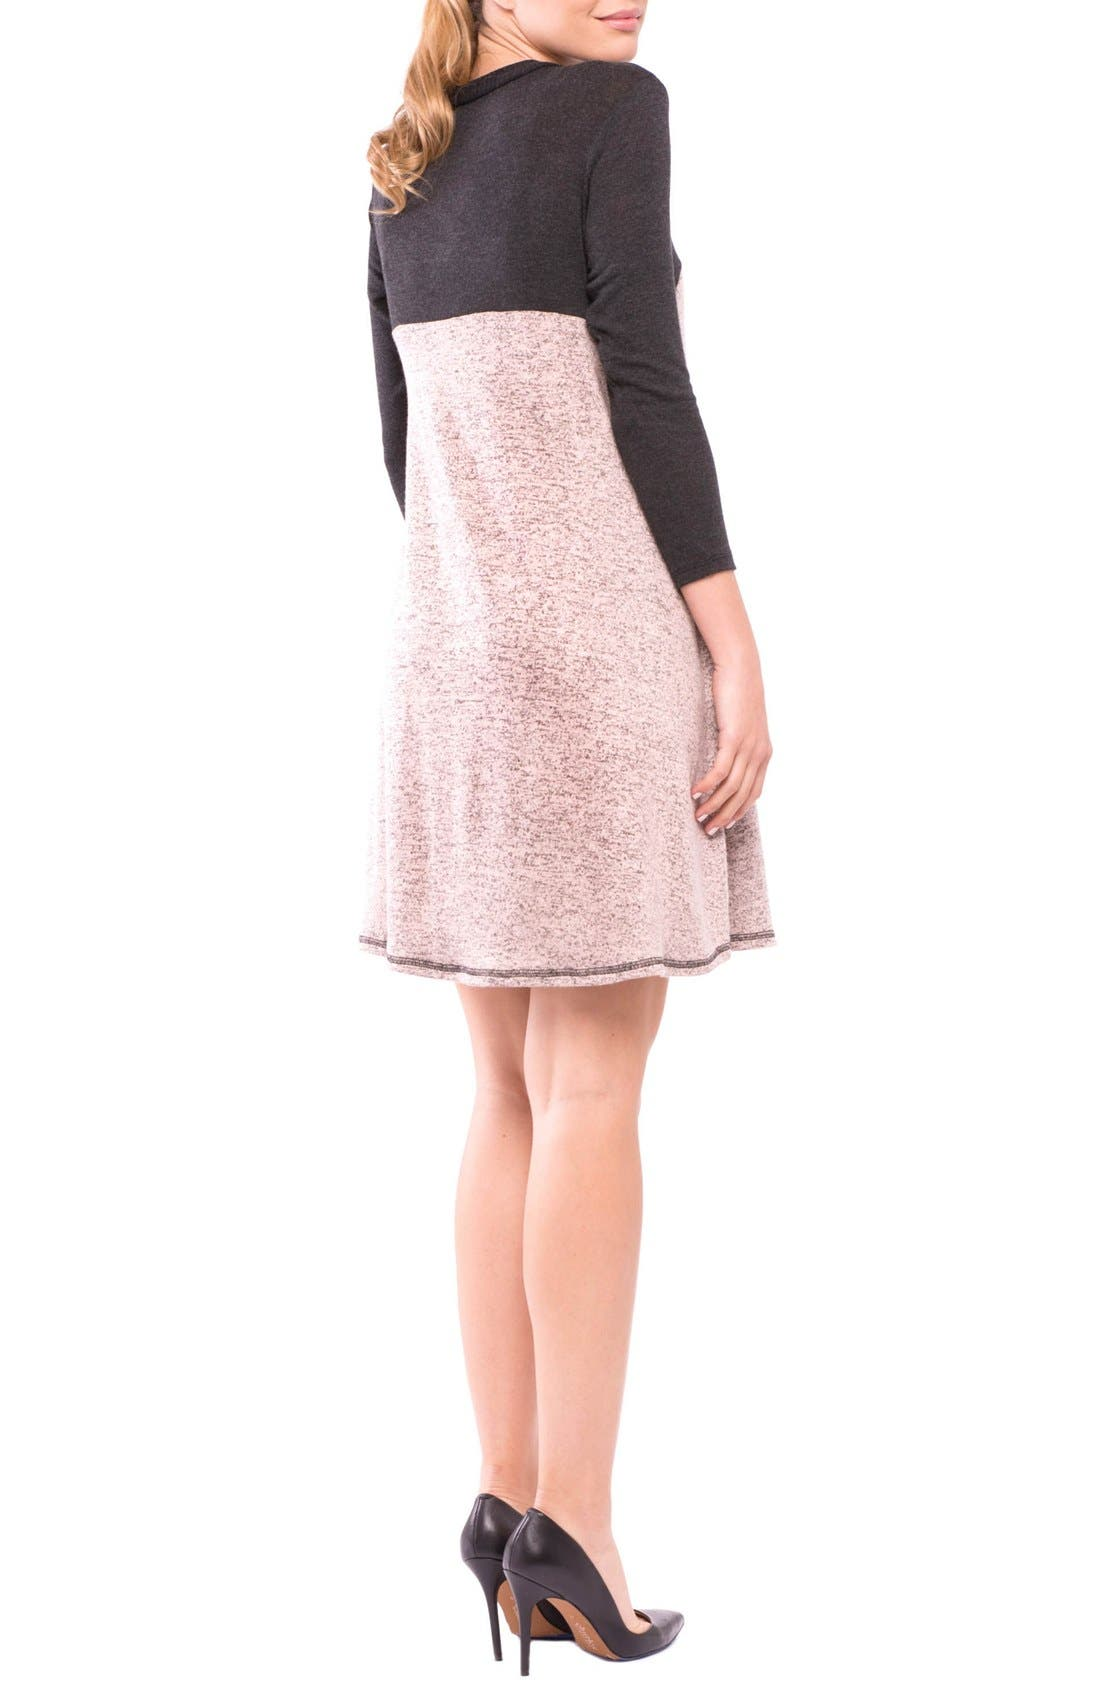 Paola Maternity Sweater Dress,                             Alternate thumbnail 2, color,                             CHARCOAL/ ROSE